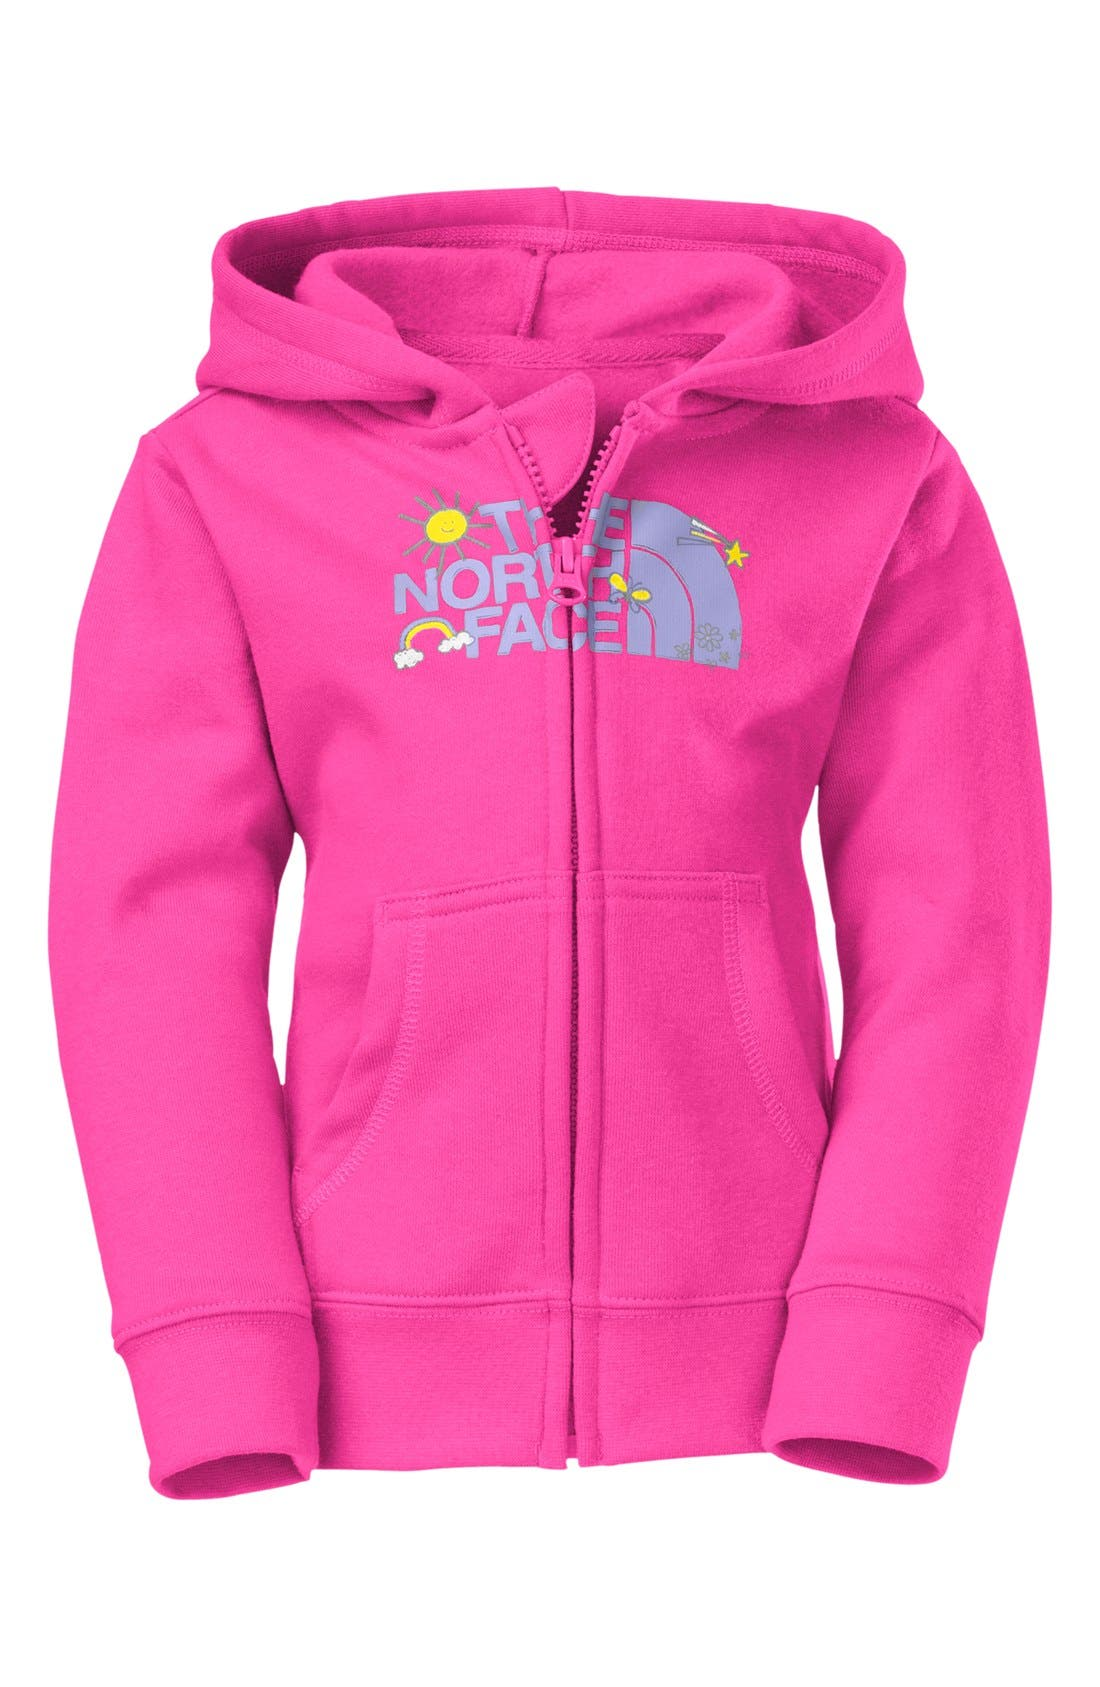 Alternate Image 1 Selected - The North Face Full Zip Hoodie (Toddler Girls)